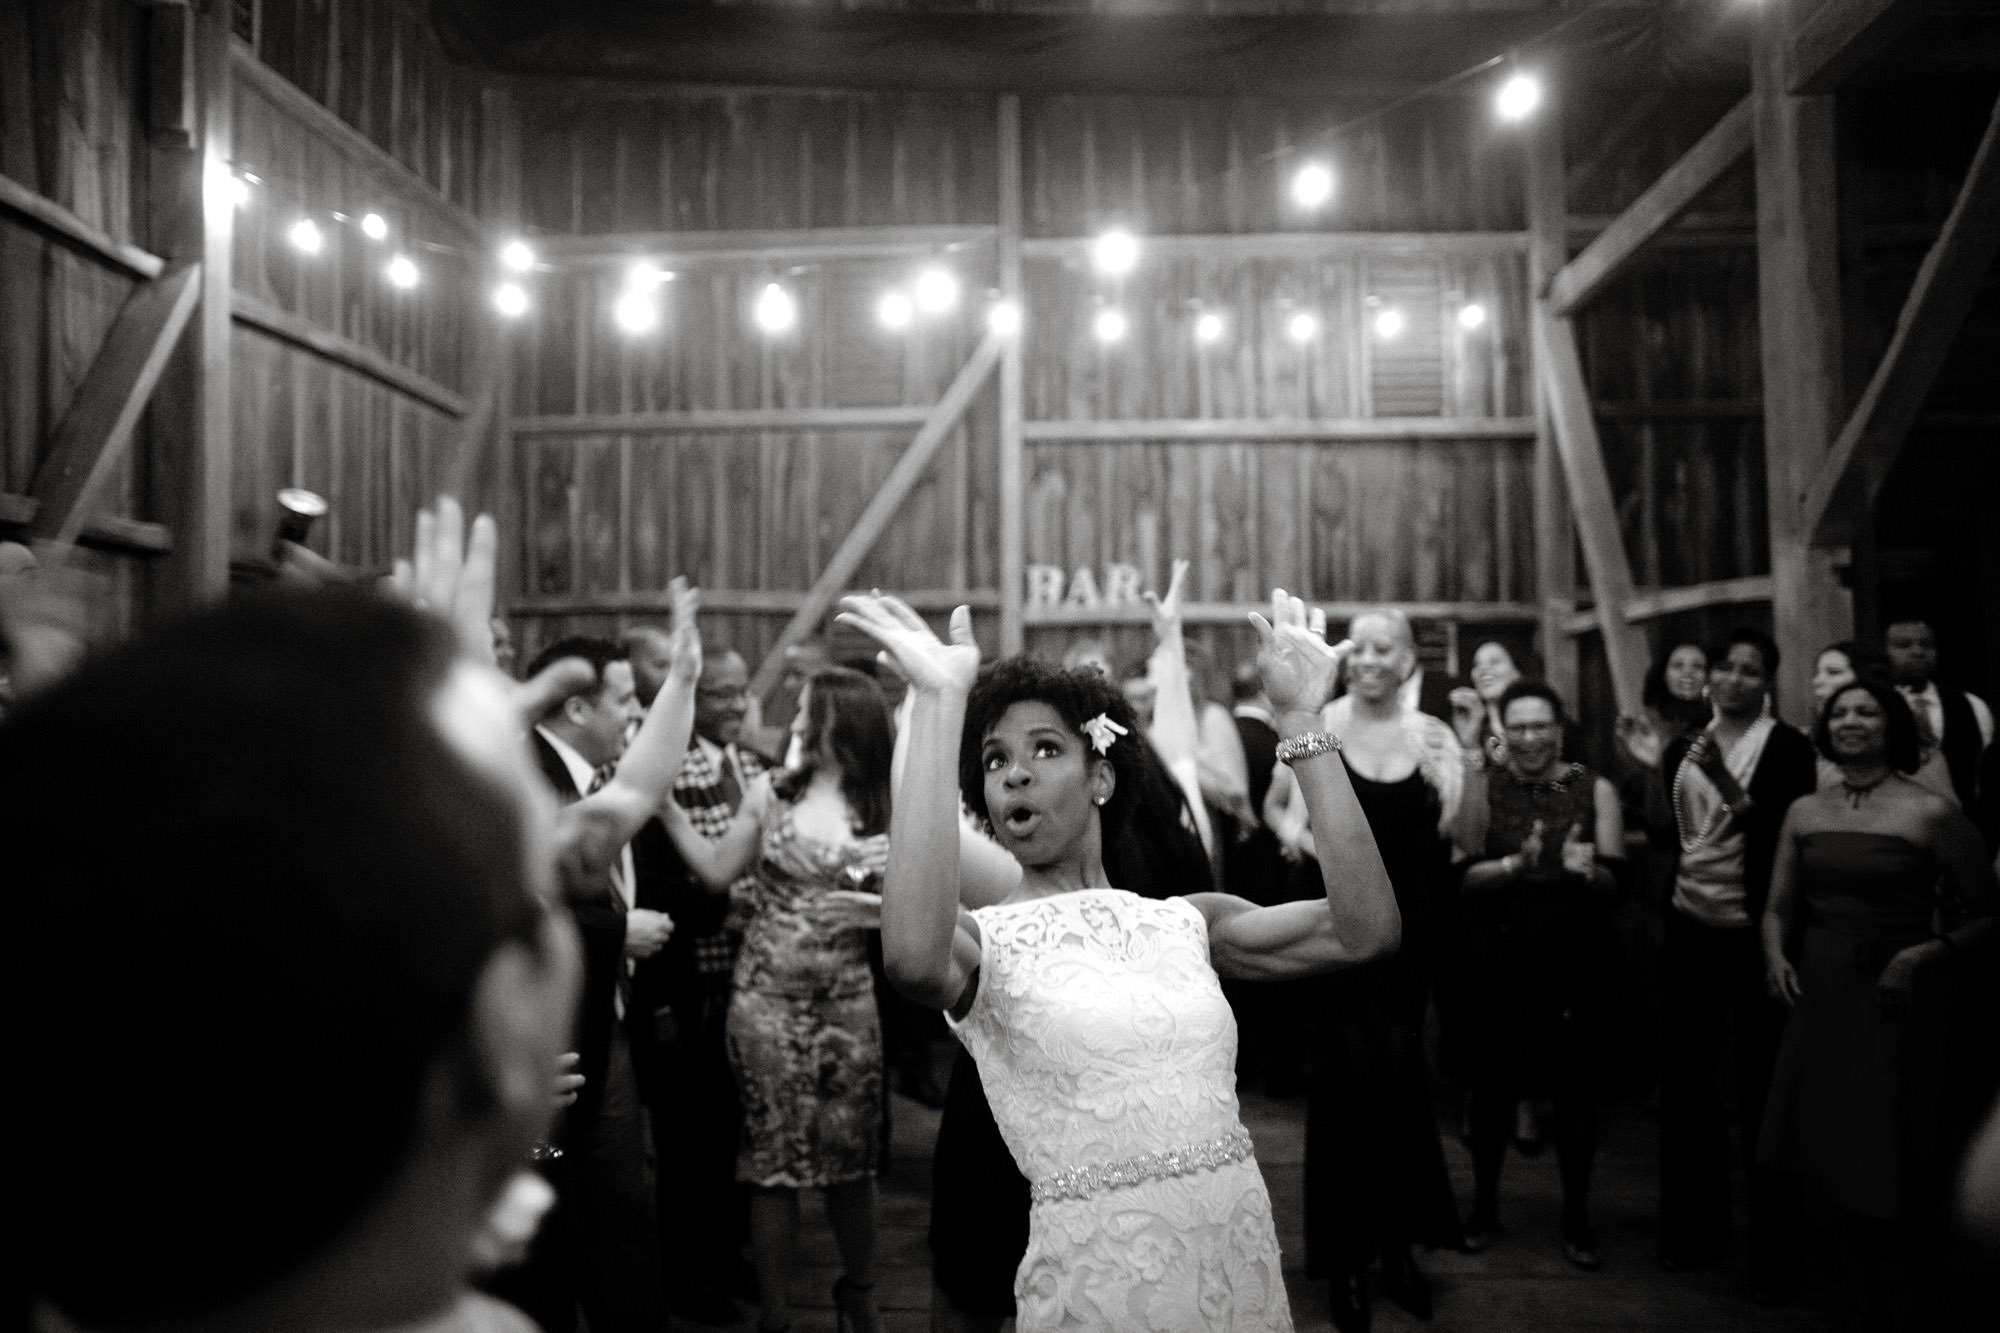 The bride shows off her moves on the  dance floor.